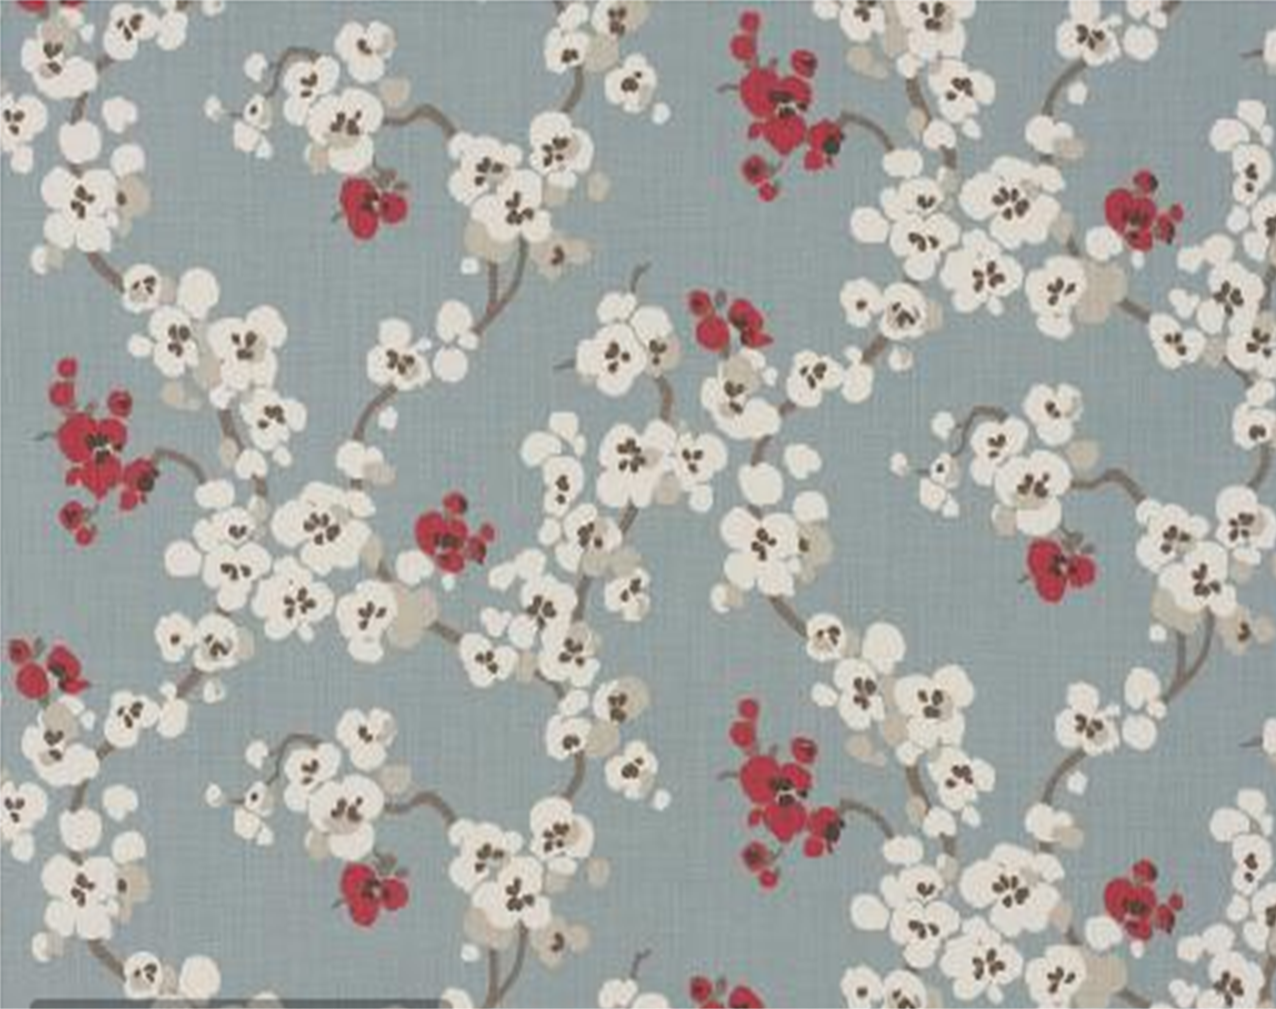 Floral Print Fabrics From The Uk Romo Fabrics Have The Most Beautiful Modern Floral Prints This Romo Fabrics Floral Print Fabric Floral Fabric